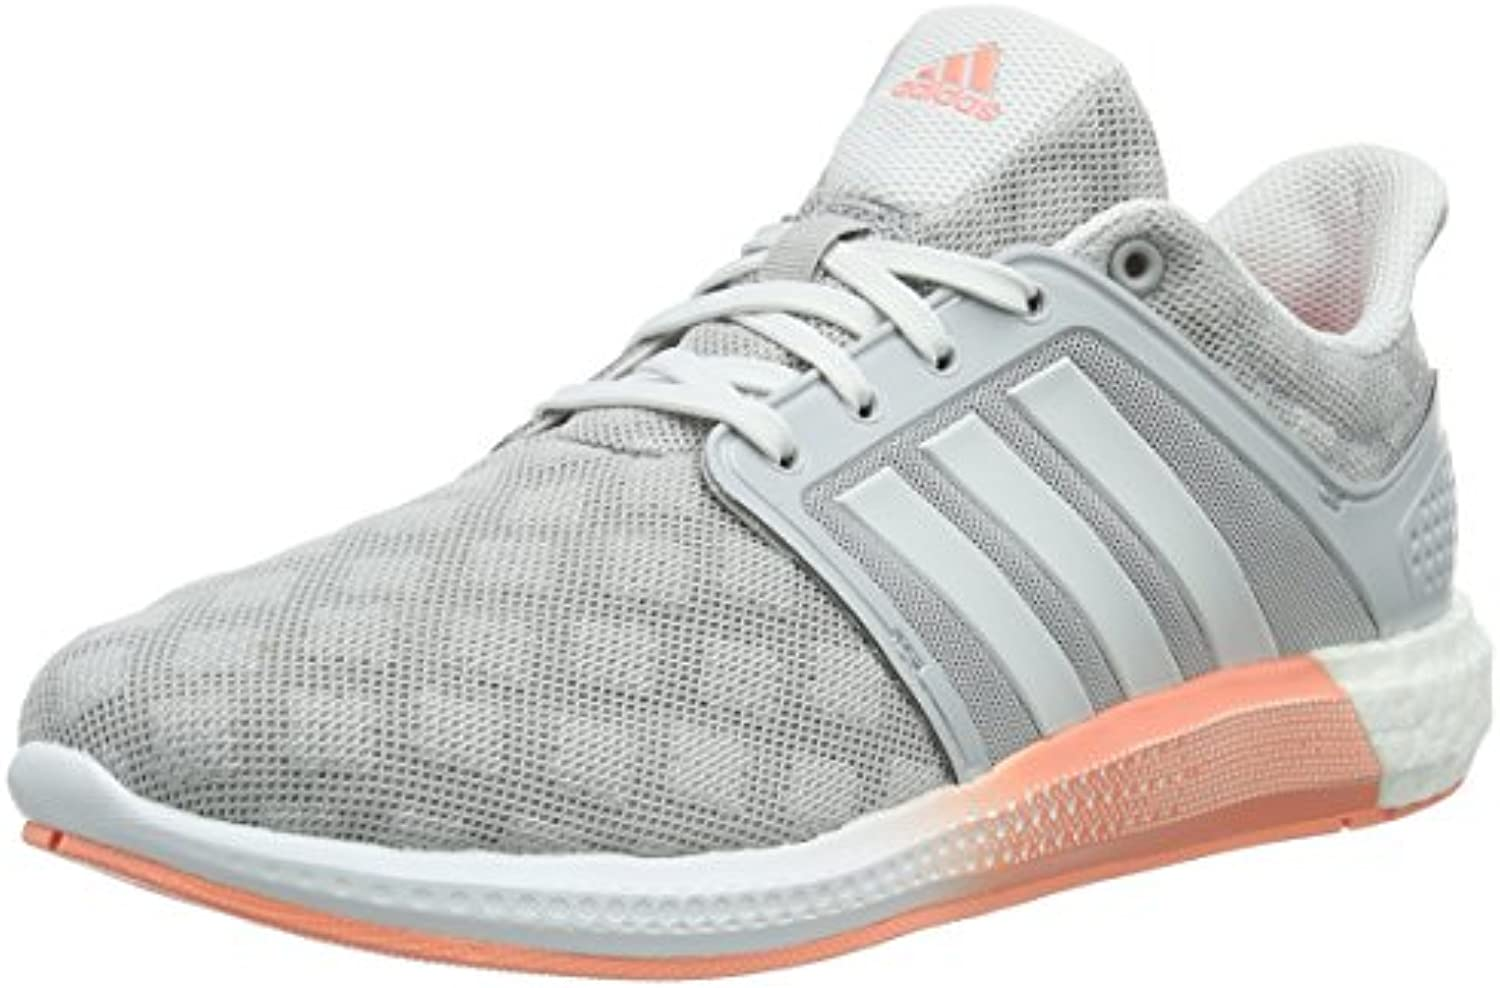 Gentleman/Lady adidas Solar RNR, Women's Running Shoes Durable service King King service of quantity Recommended today 776724